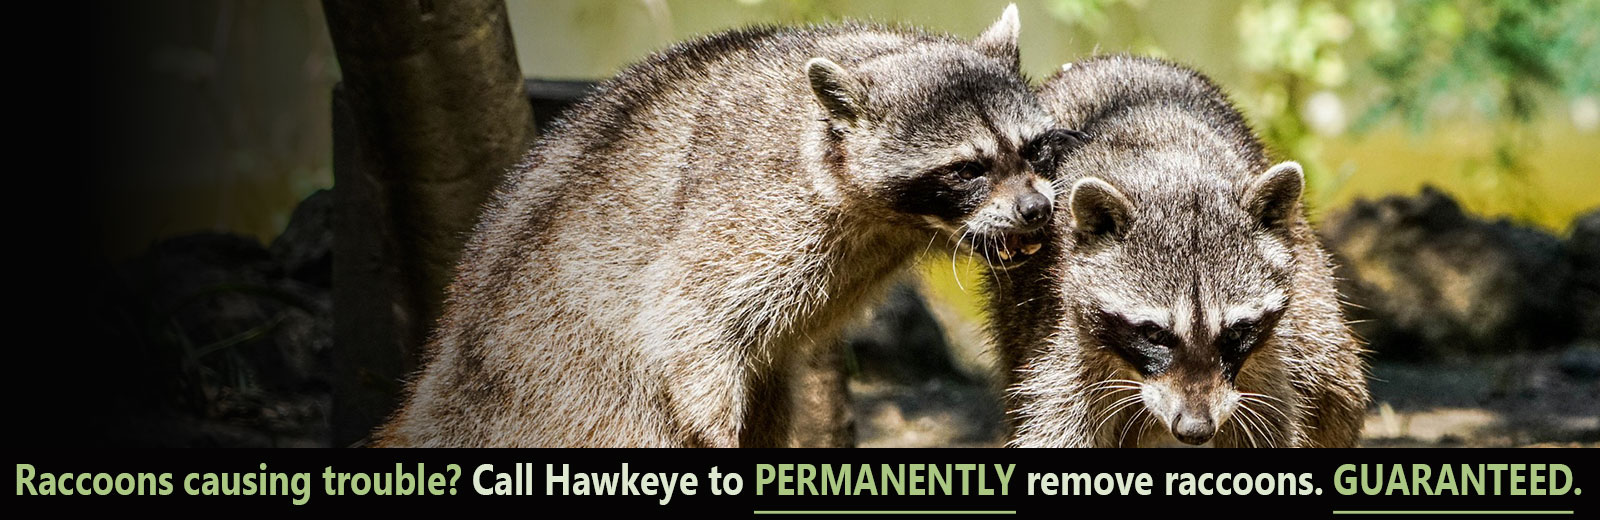 raccoon control and raccoon removal north york